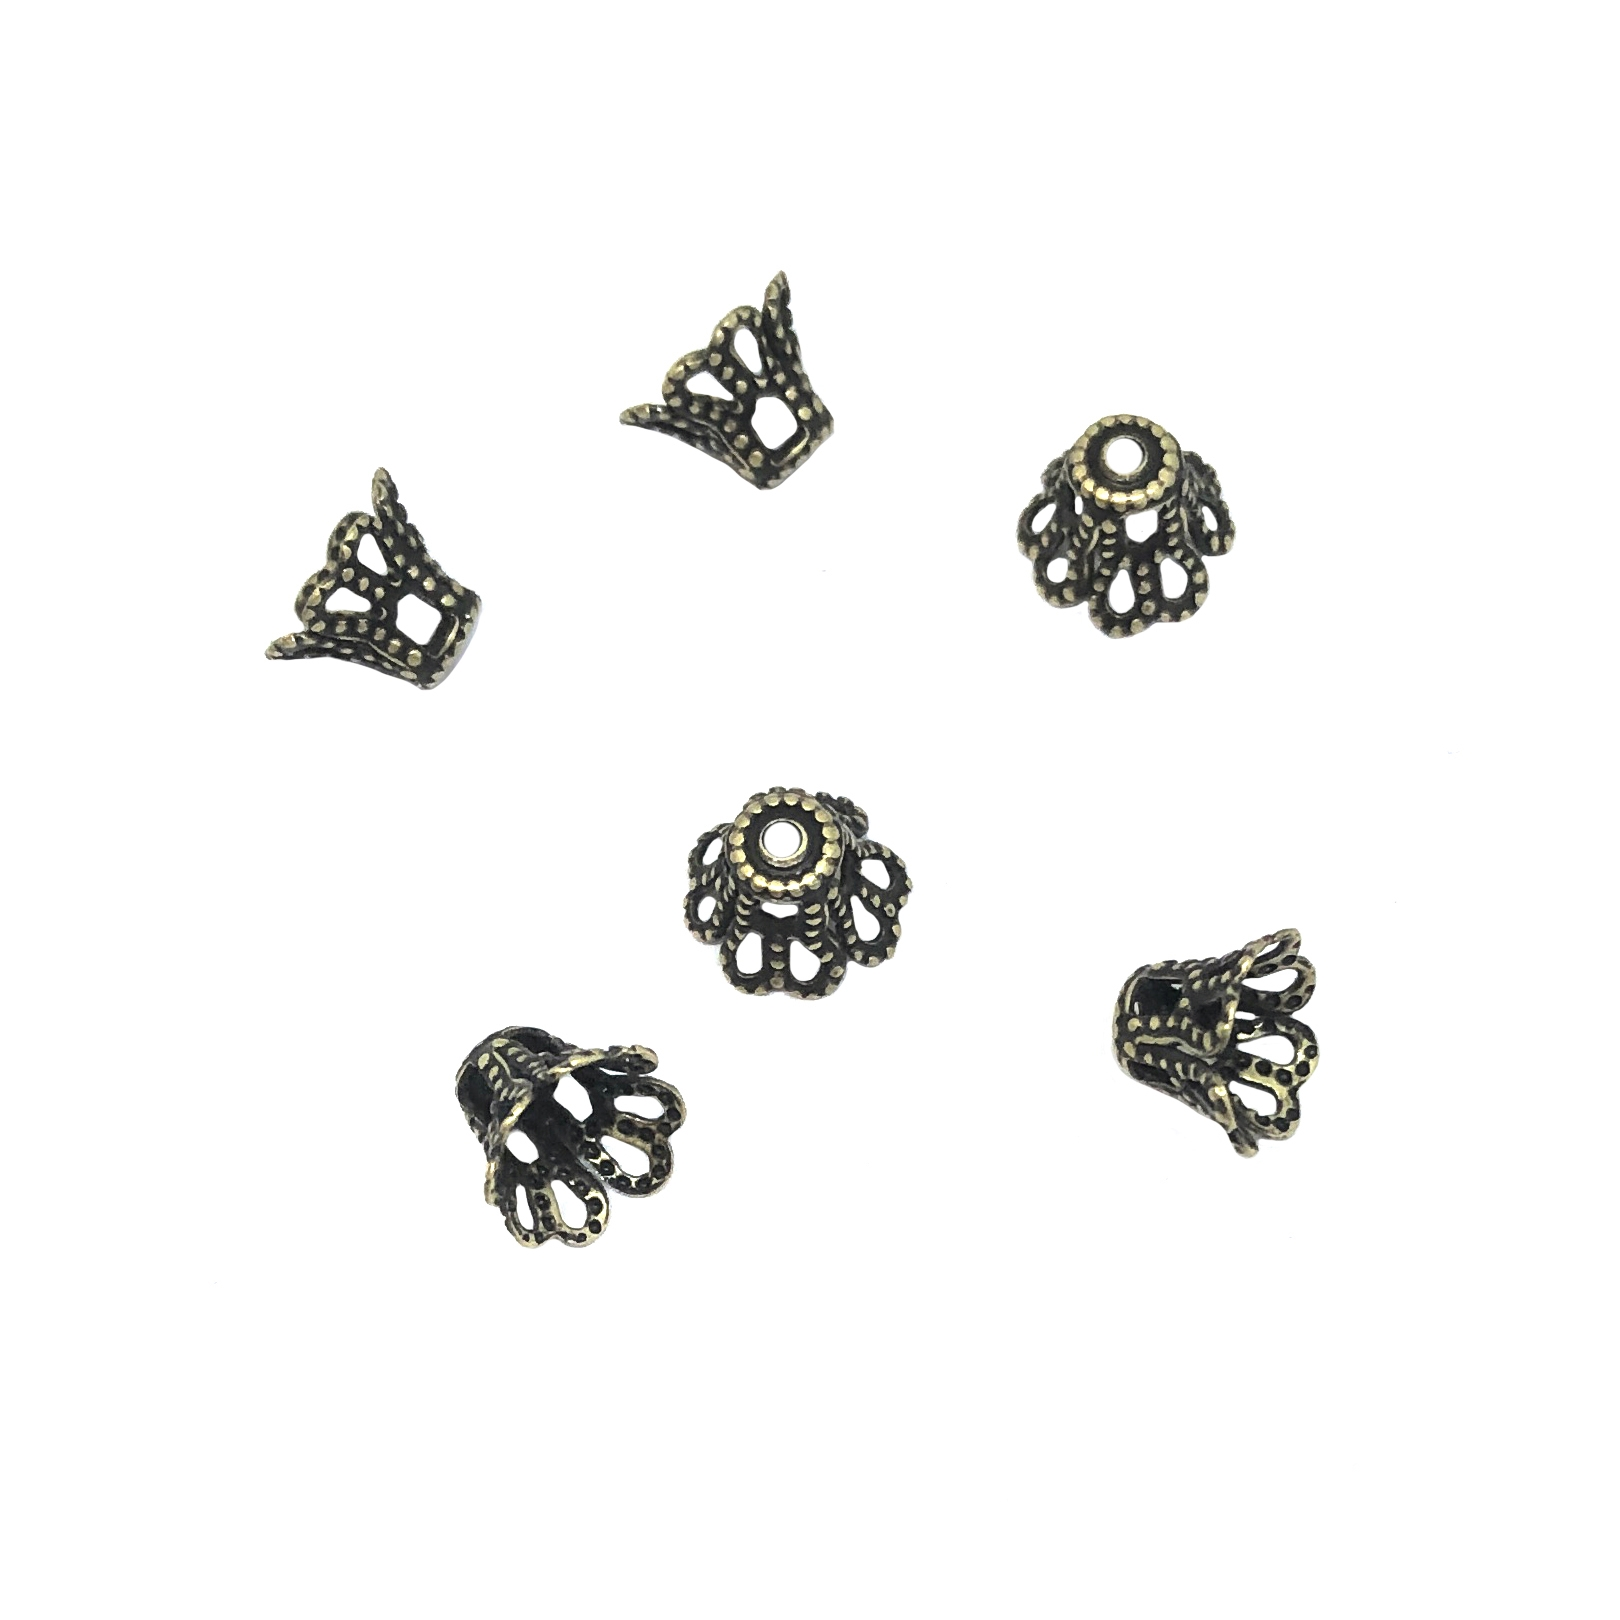 brass bead caps, small filigree caps, 08967, lacy filigree, victorian style, cap, caps, metal beads, brass ox, antique brass, set of 6, 5x7mm, Bsue Boutiques, findings, jewelry supplies